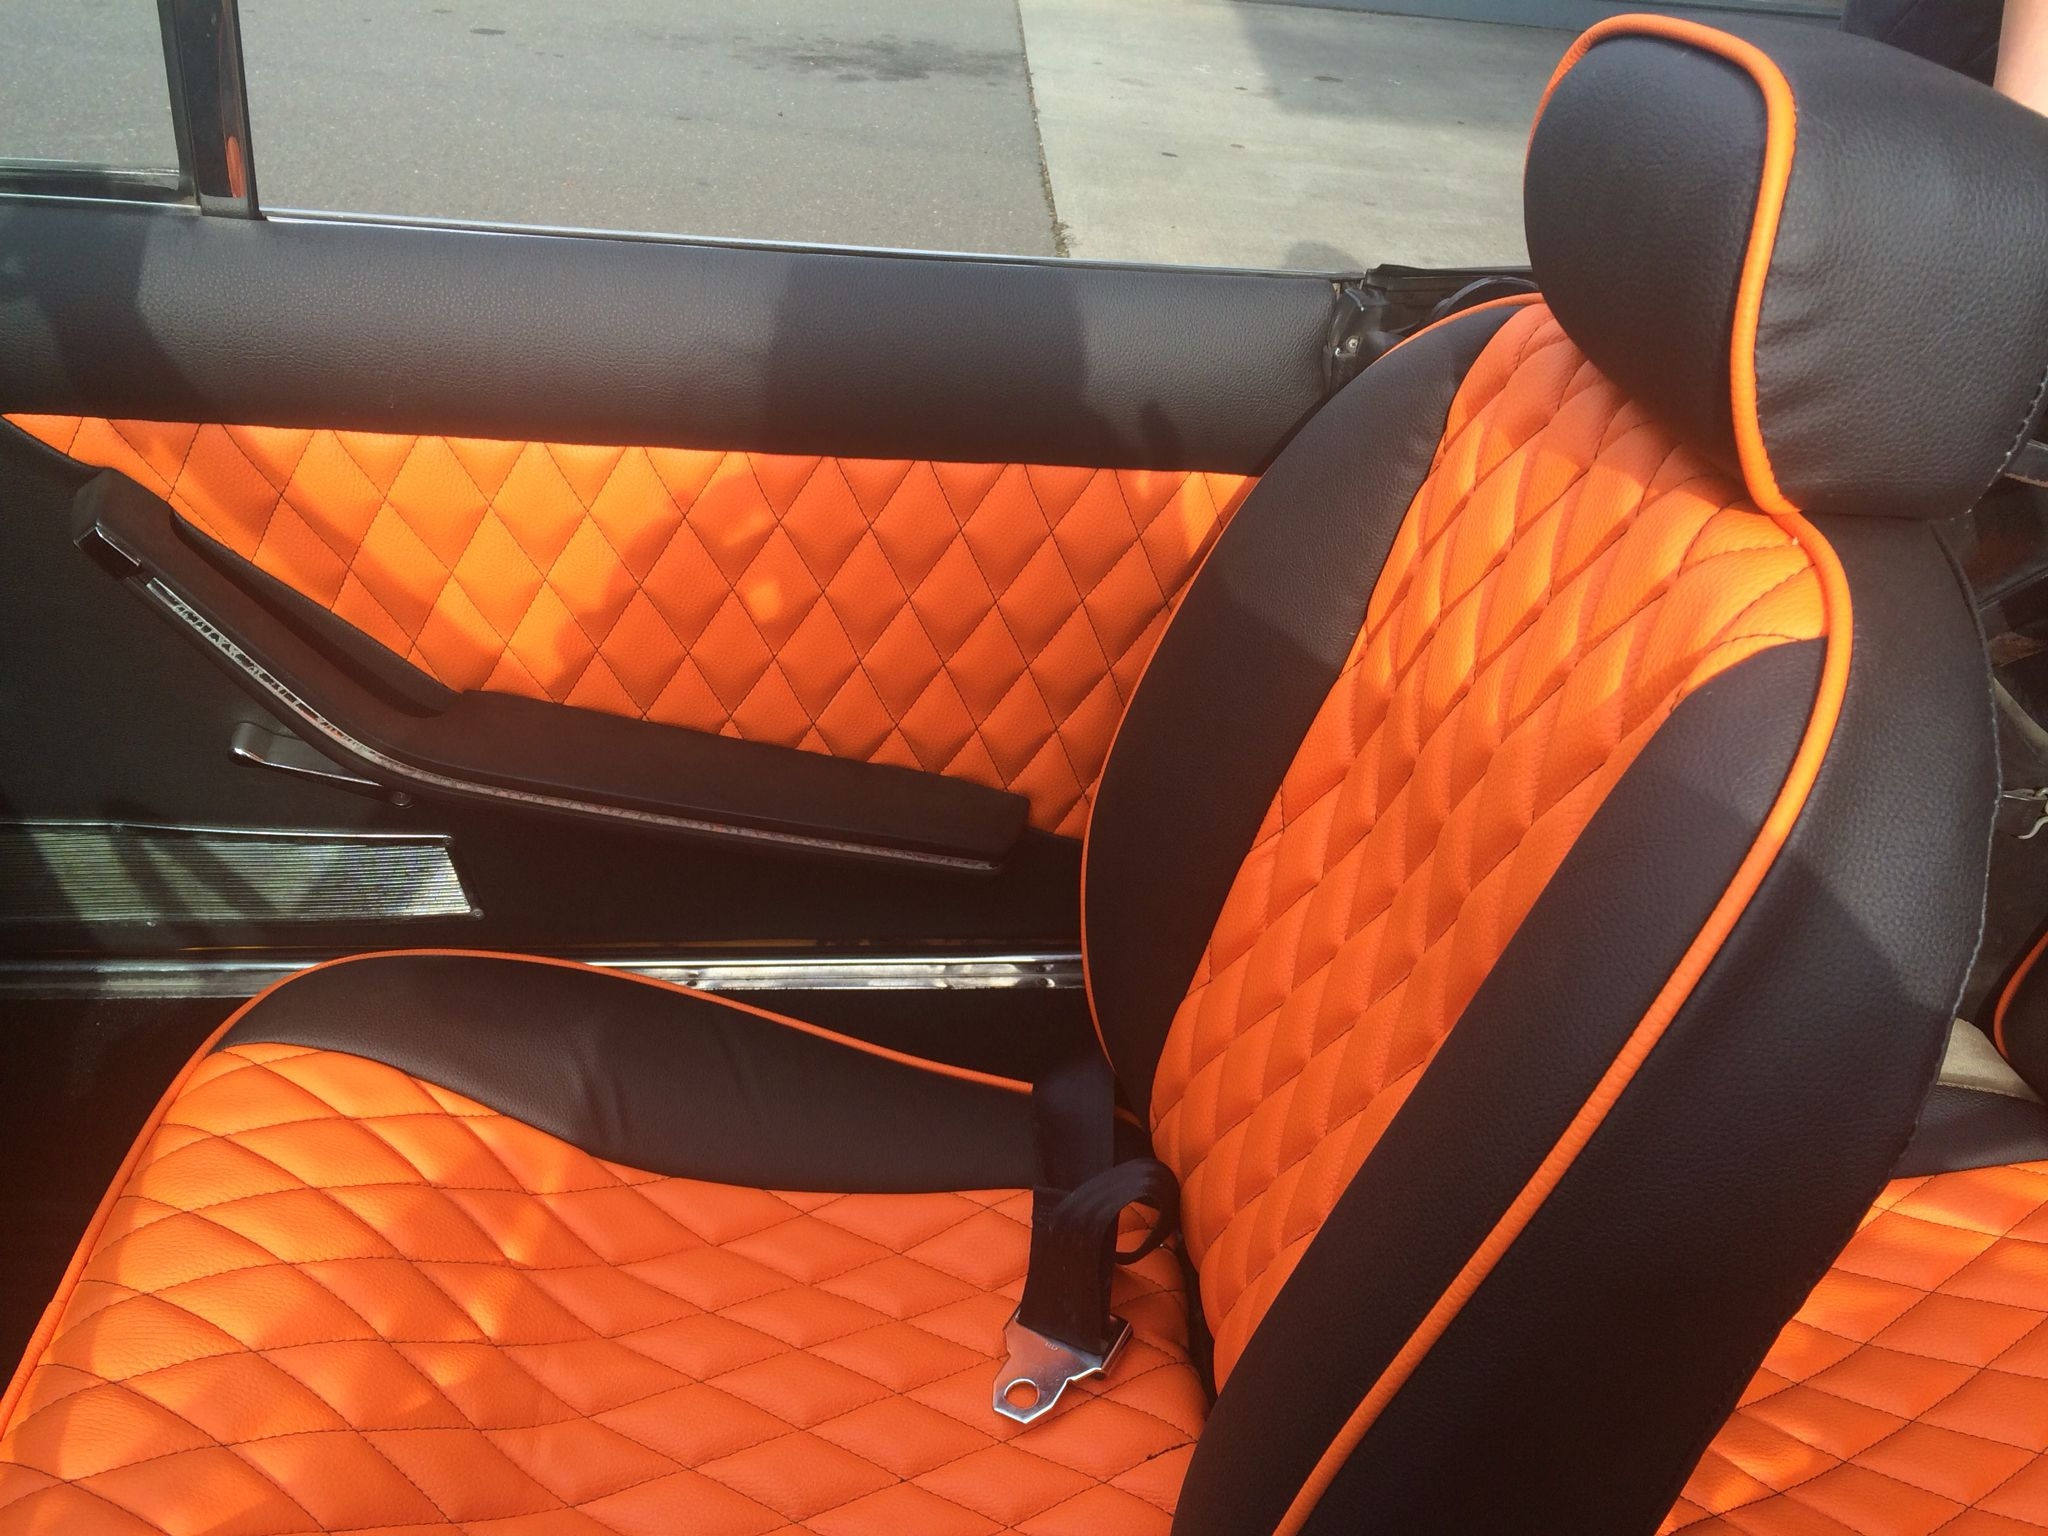 orange and black car interior cars and motorcycles pinterest car interiors cars and fiat. Black Bedroom Furniture Sets. Home Design Ideas